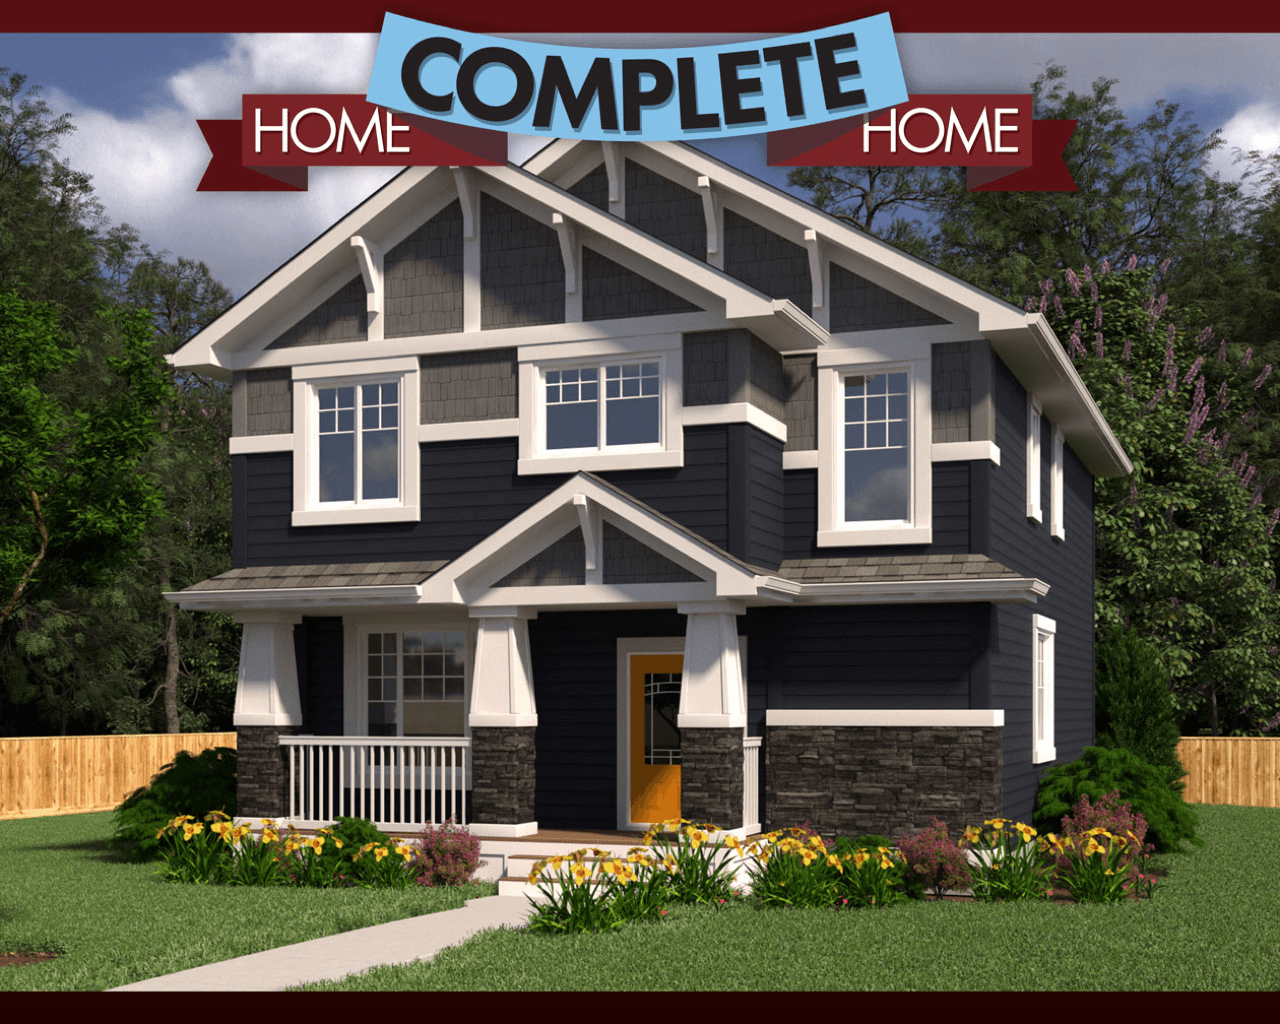 """Last Chance to Purchase a """"Home Complete Home"""" Promo image"""